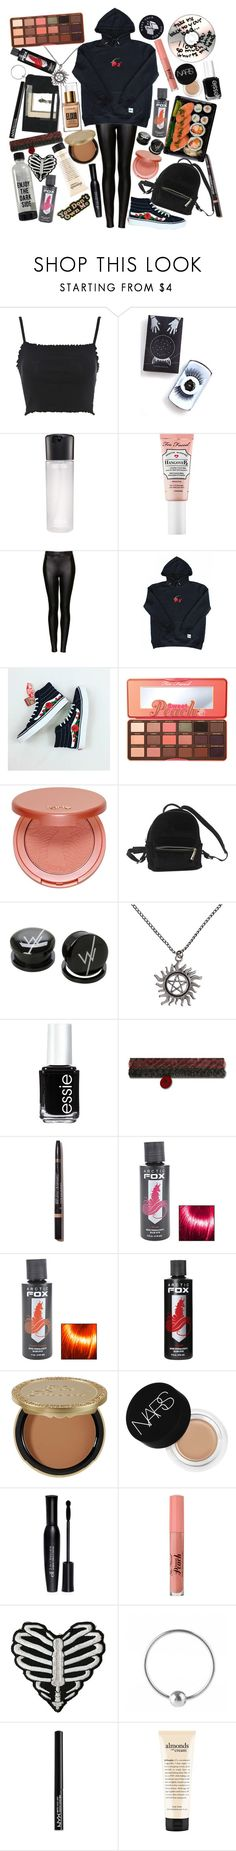 """If I tried to change my life one more day there would be nobody else to save. And I can't change into a person I don't wanna be"" by thelyricsmatter ❤ liked on Polyvore featuring Topshop, Black Magic Lashes, MAC Cosmetics, Too Faced Cosmetics, Moleskine, Wilt, tarte, Urban Outfitters, Hot Topic and Essie"